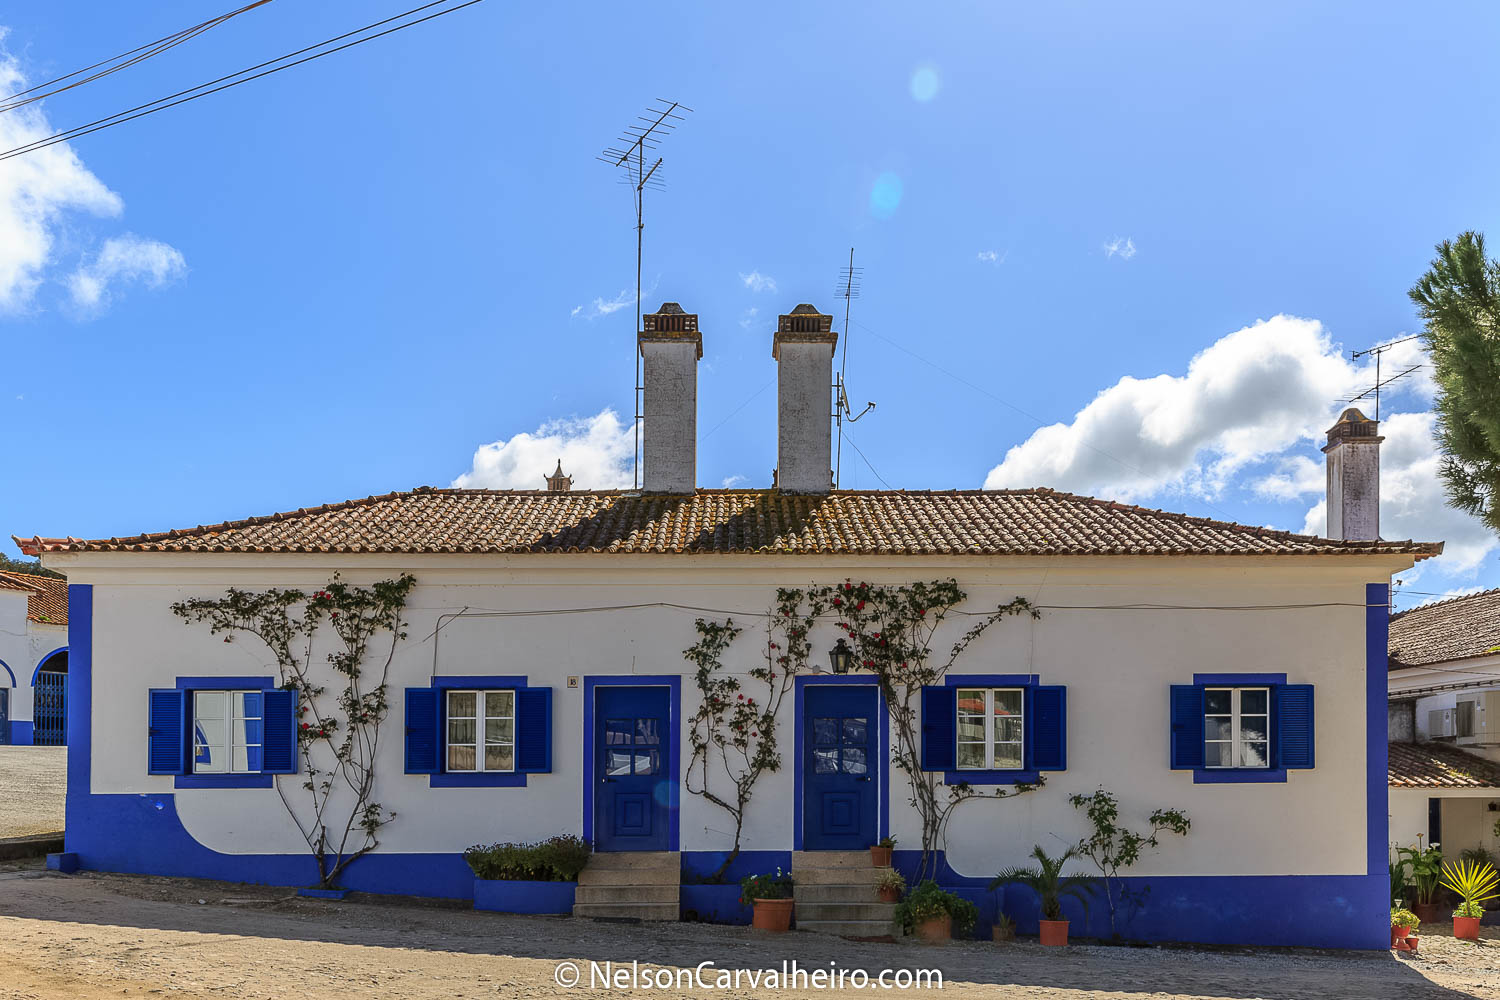 Alentejo Wine Travel Guide - Monte da Ravasqueira - Alentejo's Typical House